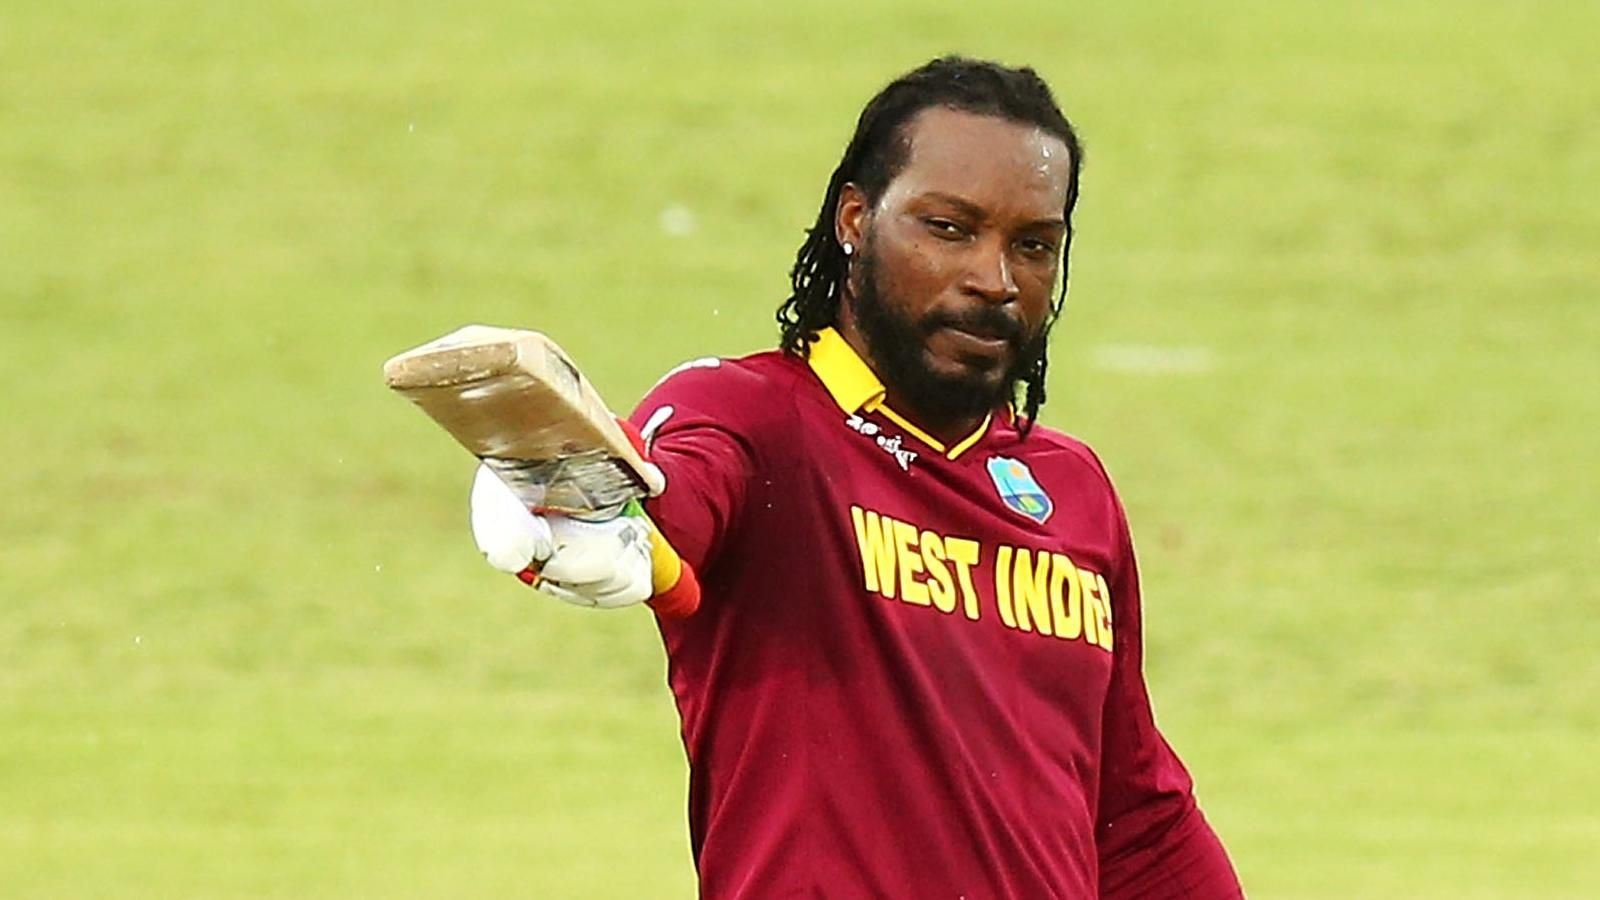 Chris Gayle Richest Cricketers 2017